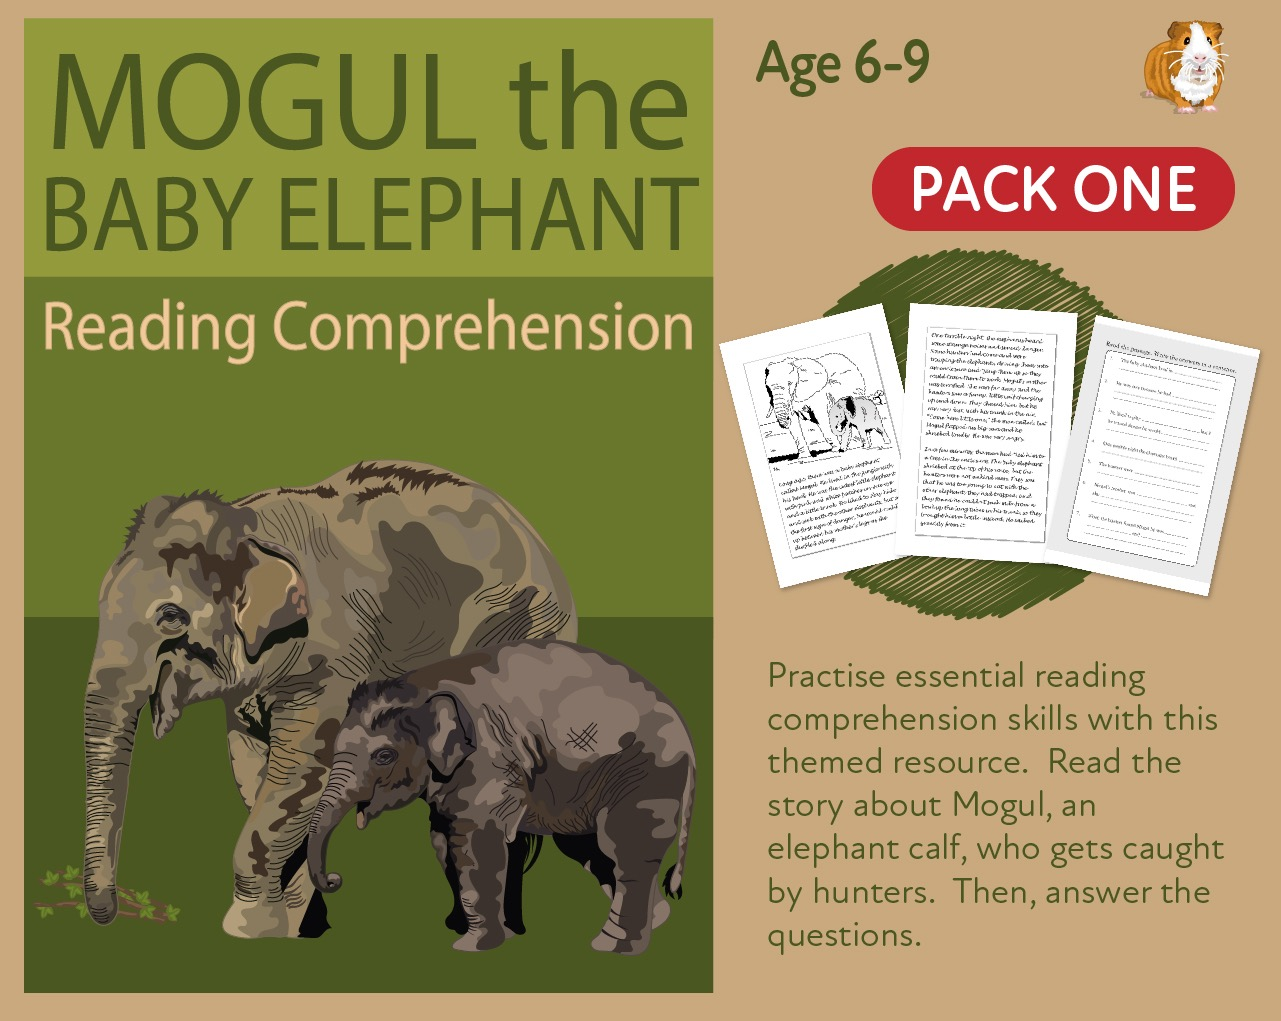 Let's Practise Our Reading Comprehension: Mogul The Baby Elephant: Part 1 (6-9 years)